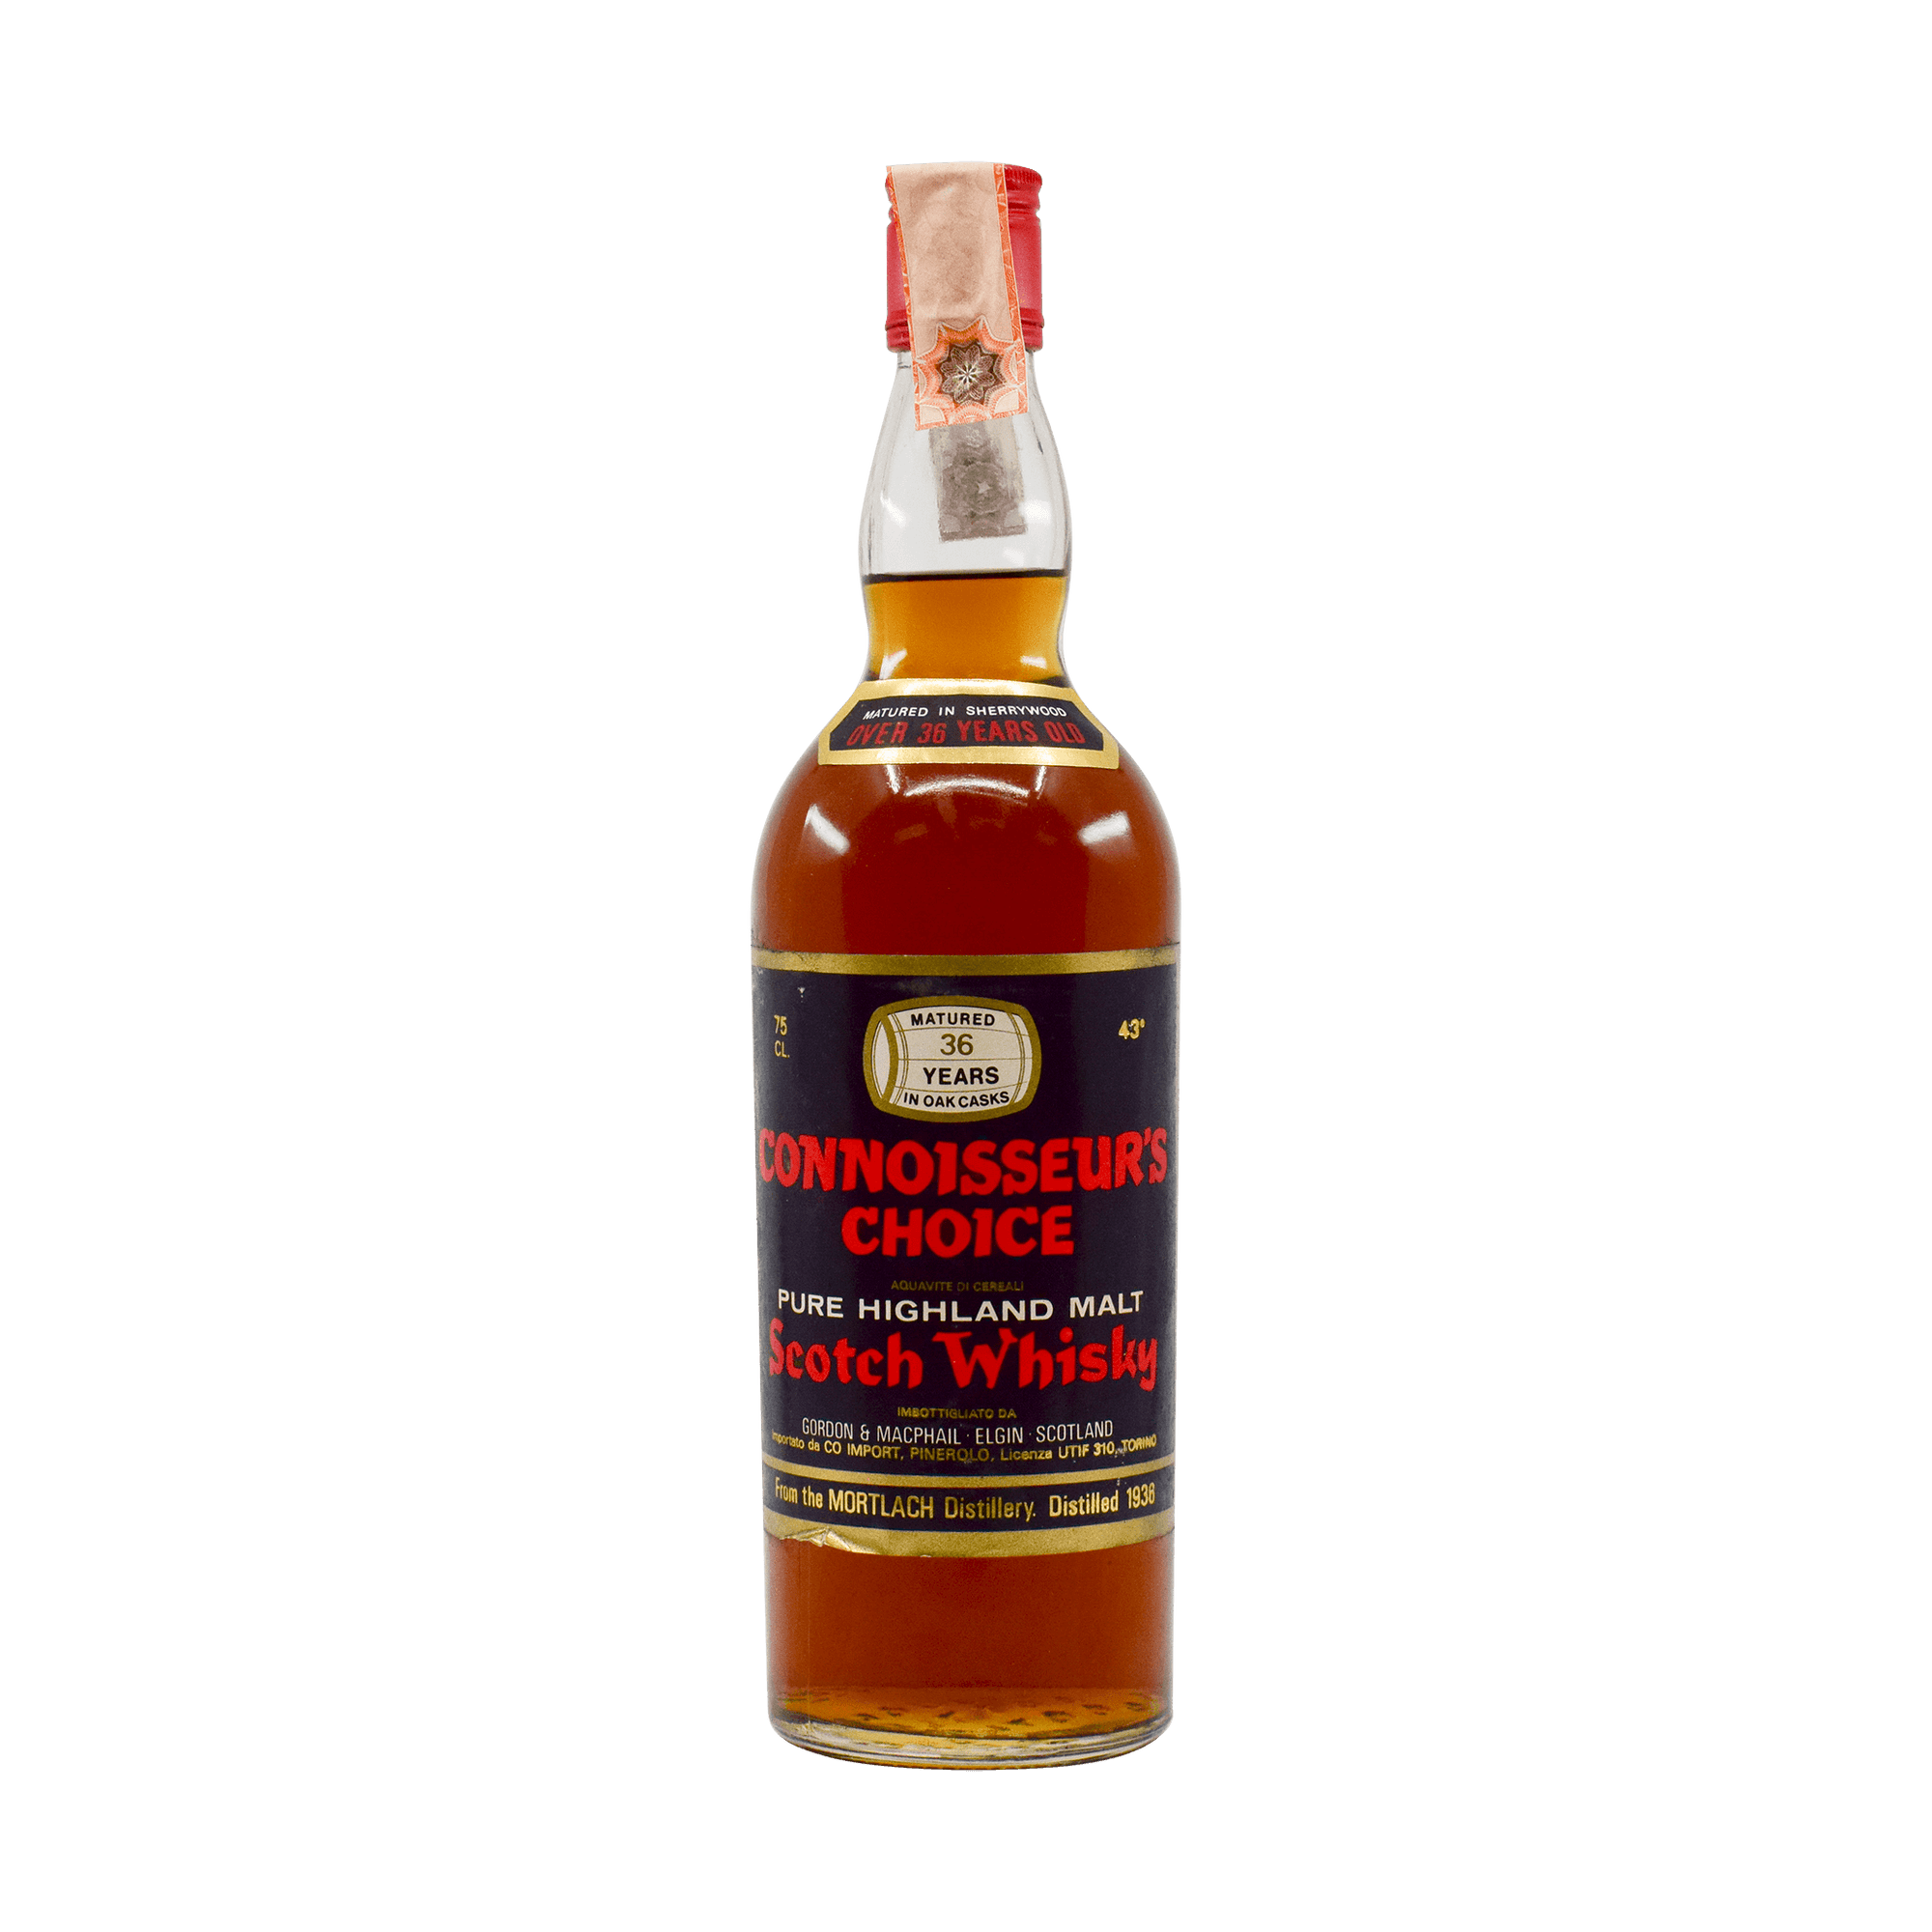 Mortlach 1936 36 Year Old 'Connoisseurs Choice' Gordon & MacPhail 43.00% 75cl